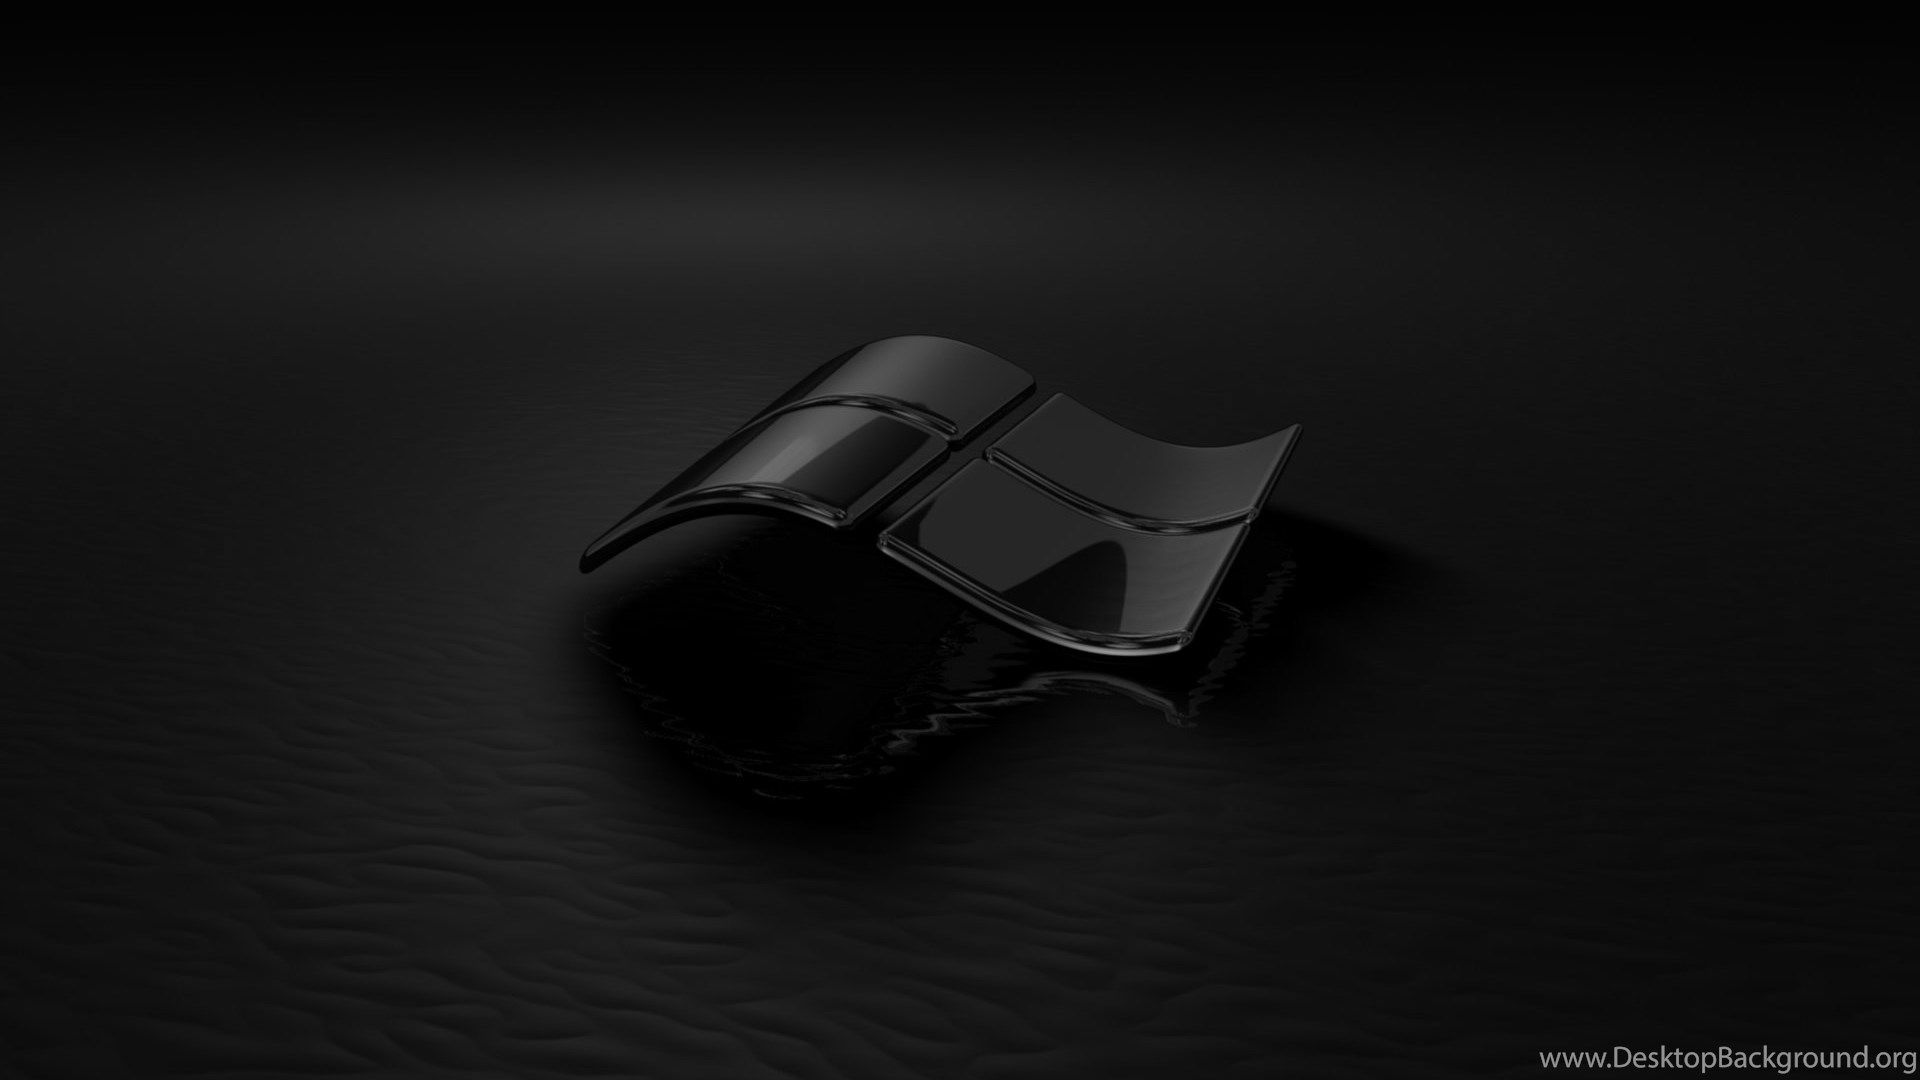 Black Wallpaper 4k For Android In 2020 Android Wallpaper Black Black Background Wallpaper Dark Wallpaper Iphone